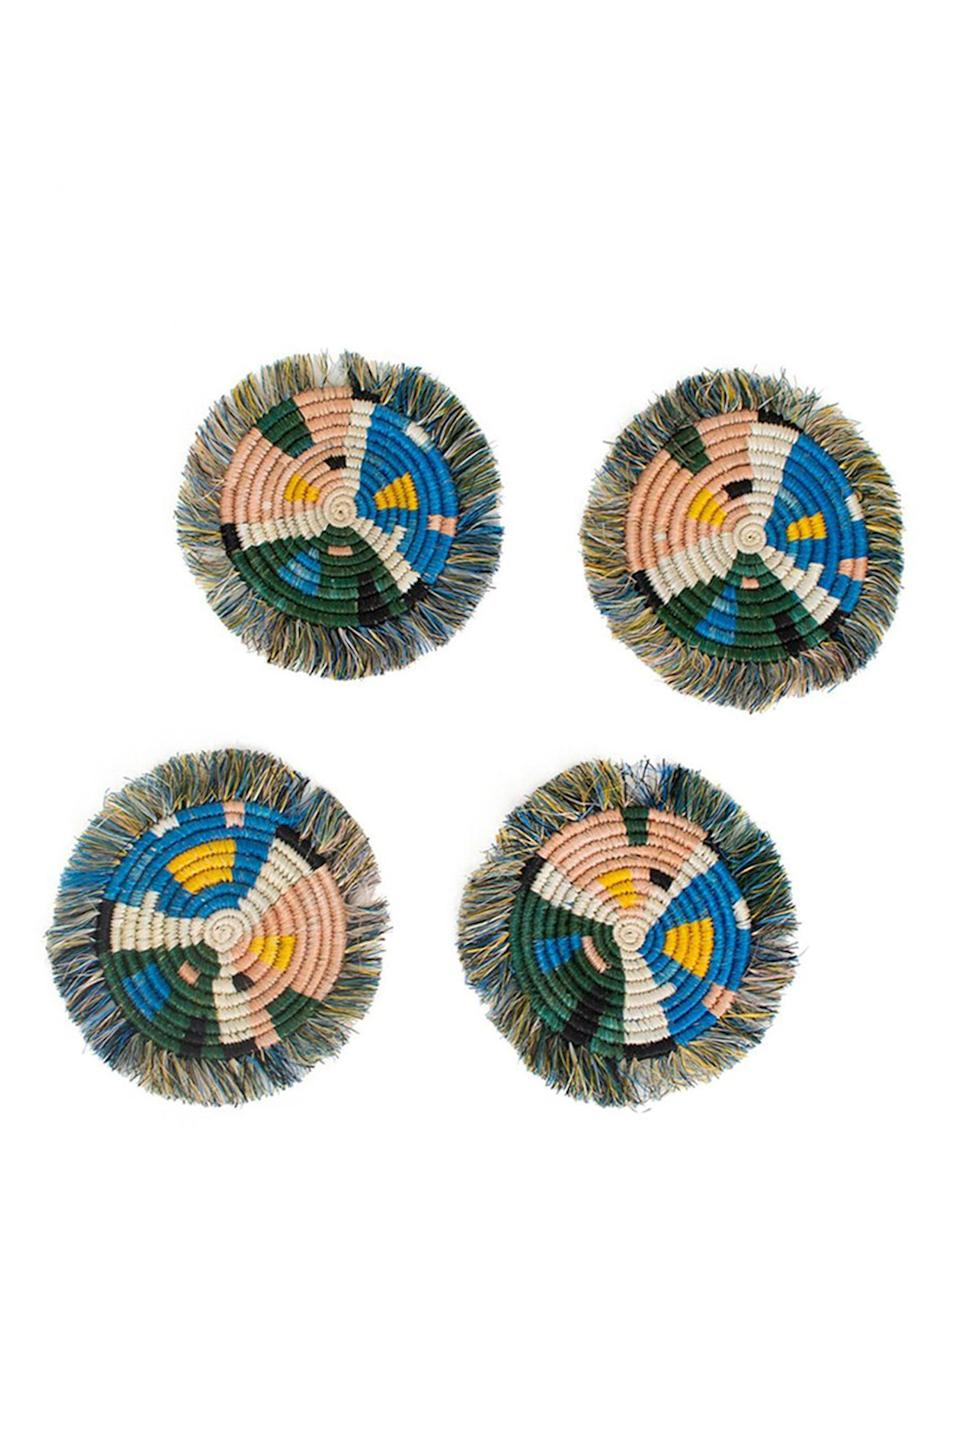 """<p><strong>Jungalow</strong></p><p>jungalow.com</p><p><strong>$40.00</strong></p><p><a href=""""https://www.jungalow.com/products/peach-fringe-coasters?_pos=3&_sid=015e78f07&_ss=r"""" rel=""""nofollow noopener"""" target=""""_blank"""" data-ylk=""""slk:Shop Now"""" class=""""link rapid-noclick-resp"""">Shop Now</a></p><p>Considering how many mugs she drinks while reading, coasters are a must. </p>"""